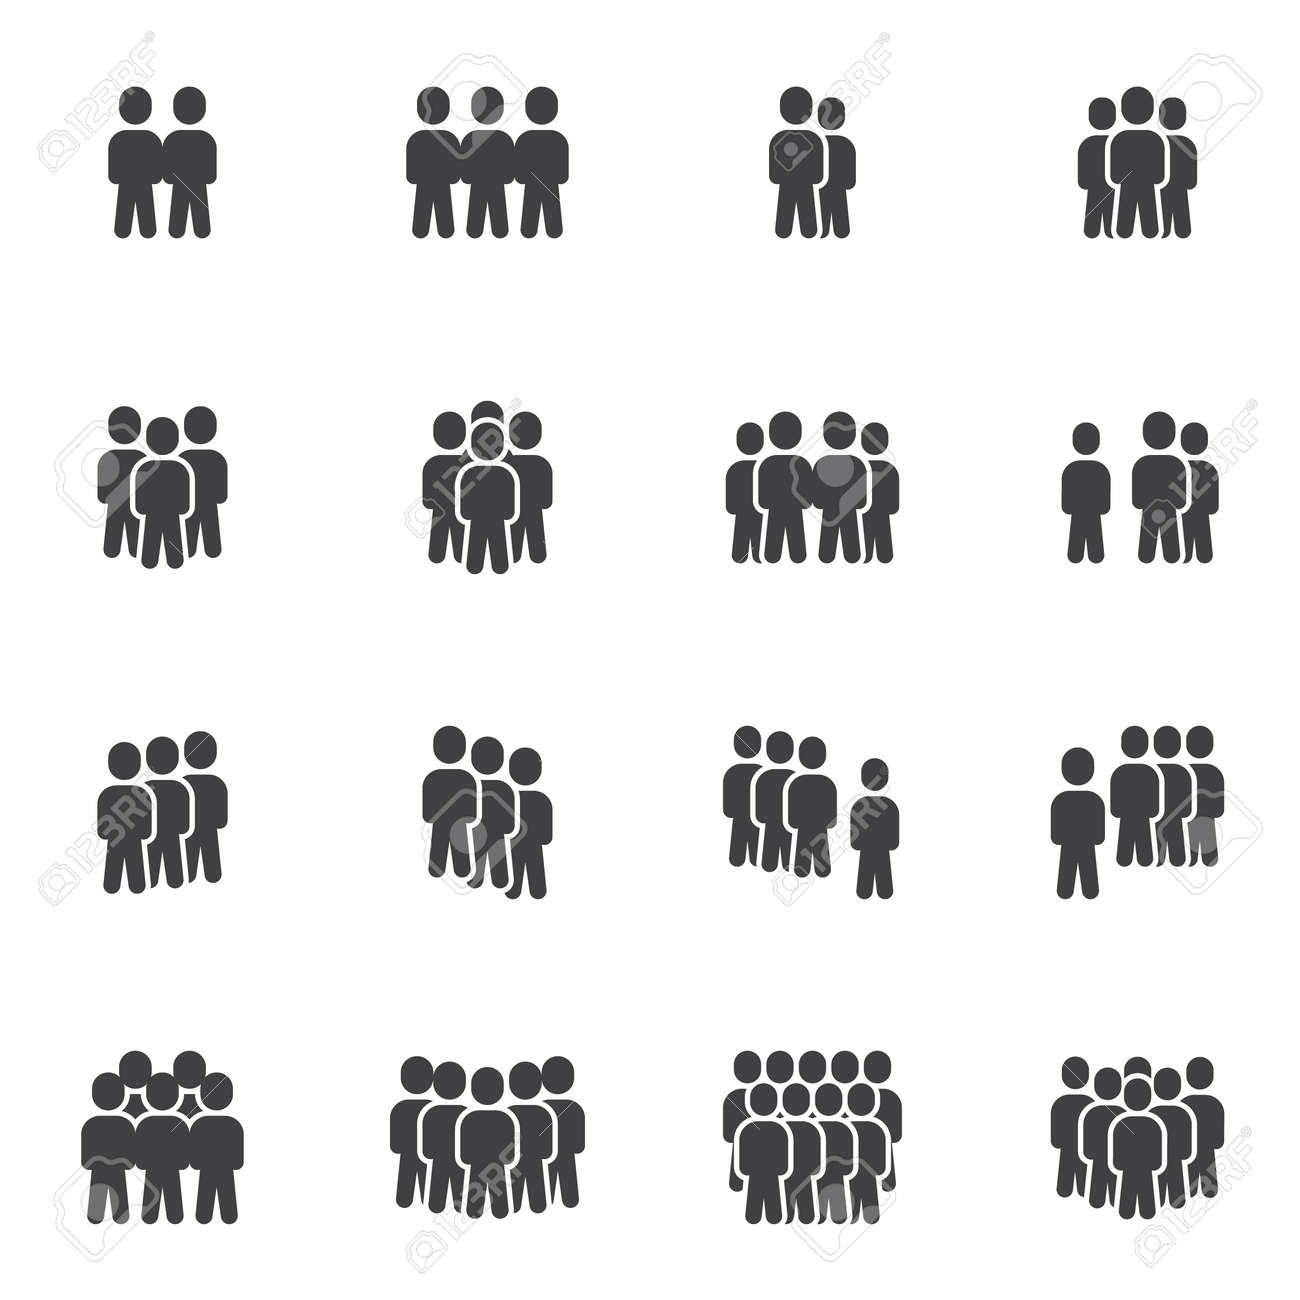 Crowd of people vector icons set, modern solid symbol collection, filled style pictogram pack. Signs, logo illustration. Set includes icons as business teamwork people group community, office employee - 158425304